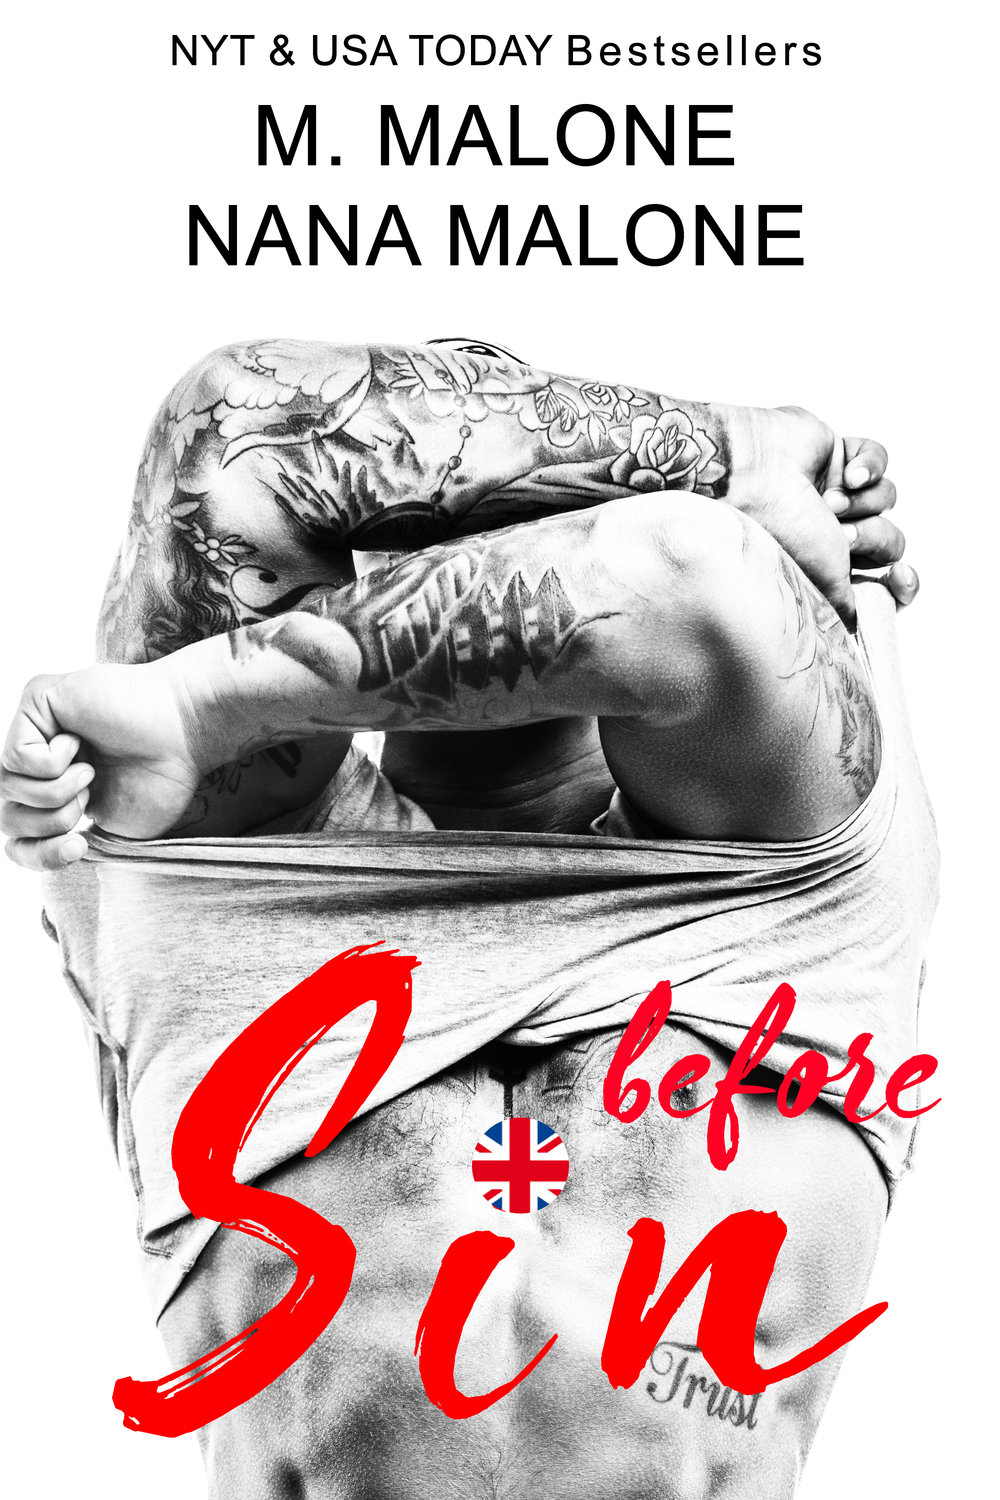 Amazon →  https://amzn.to/2rWJfdK  iBooks →  https://apple.co/2ItRacS  Nook →  http://bit.ly/2IN8yZI  Kobo →  http://bit.ly/2wZD0Lx  Google Play →  http://bit.ly/2L9saFB   They say love is all around.  Yeah, for everyone but me.  It sounds crazy, I know. Breaking News: badass bodyguard for the nation's top security firm doesn't know how to talk to women.  That's it, folks. I have no game. Luckily my newfound family at Blake Security accepts me exactly as I am.  But there are things in my past, secrets, that I'd do anything to protect them from.